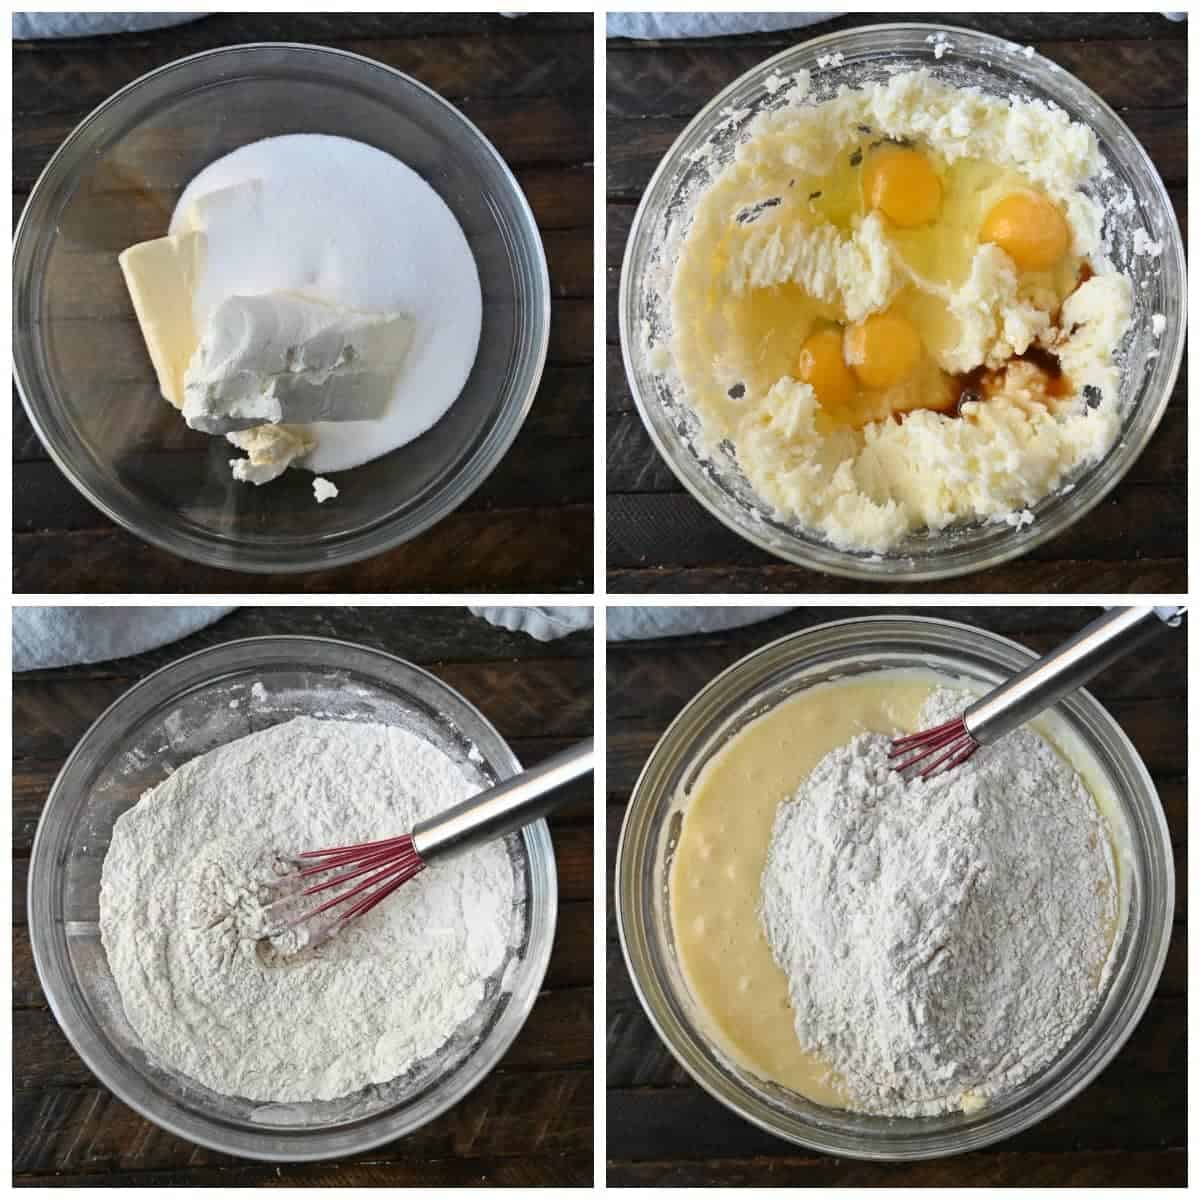 Four process photoss. First one, sugar and butter geting ready to be mixed. Second one eggs added into the mix. Third one, dry ingredients being whisked in a bowl. Fourth one, wet ingredients and dry ingredients mixed together.